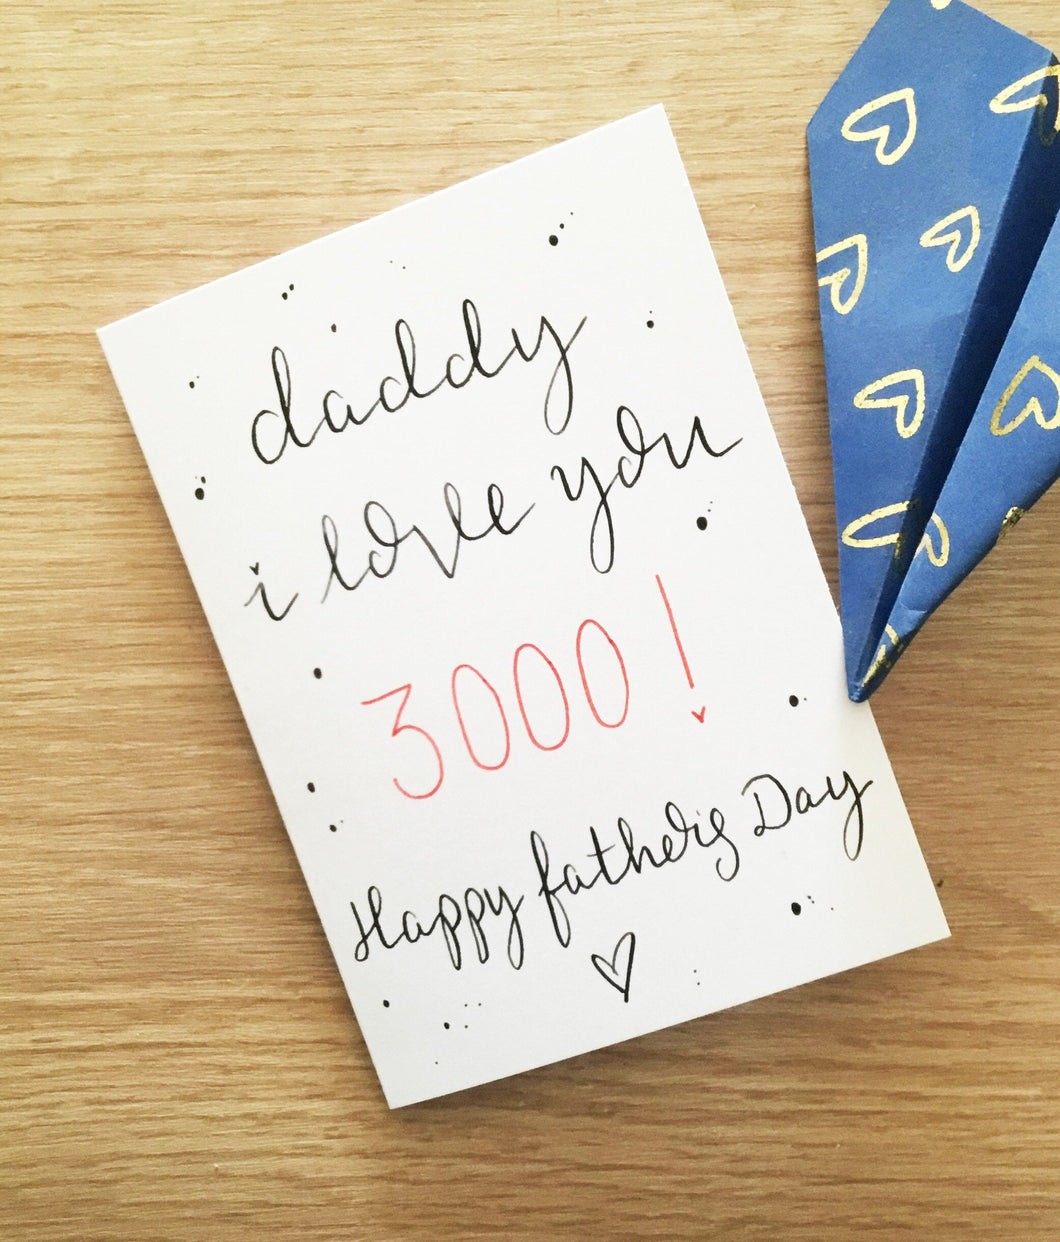 I love you 3000 Father's Day card